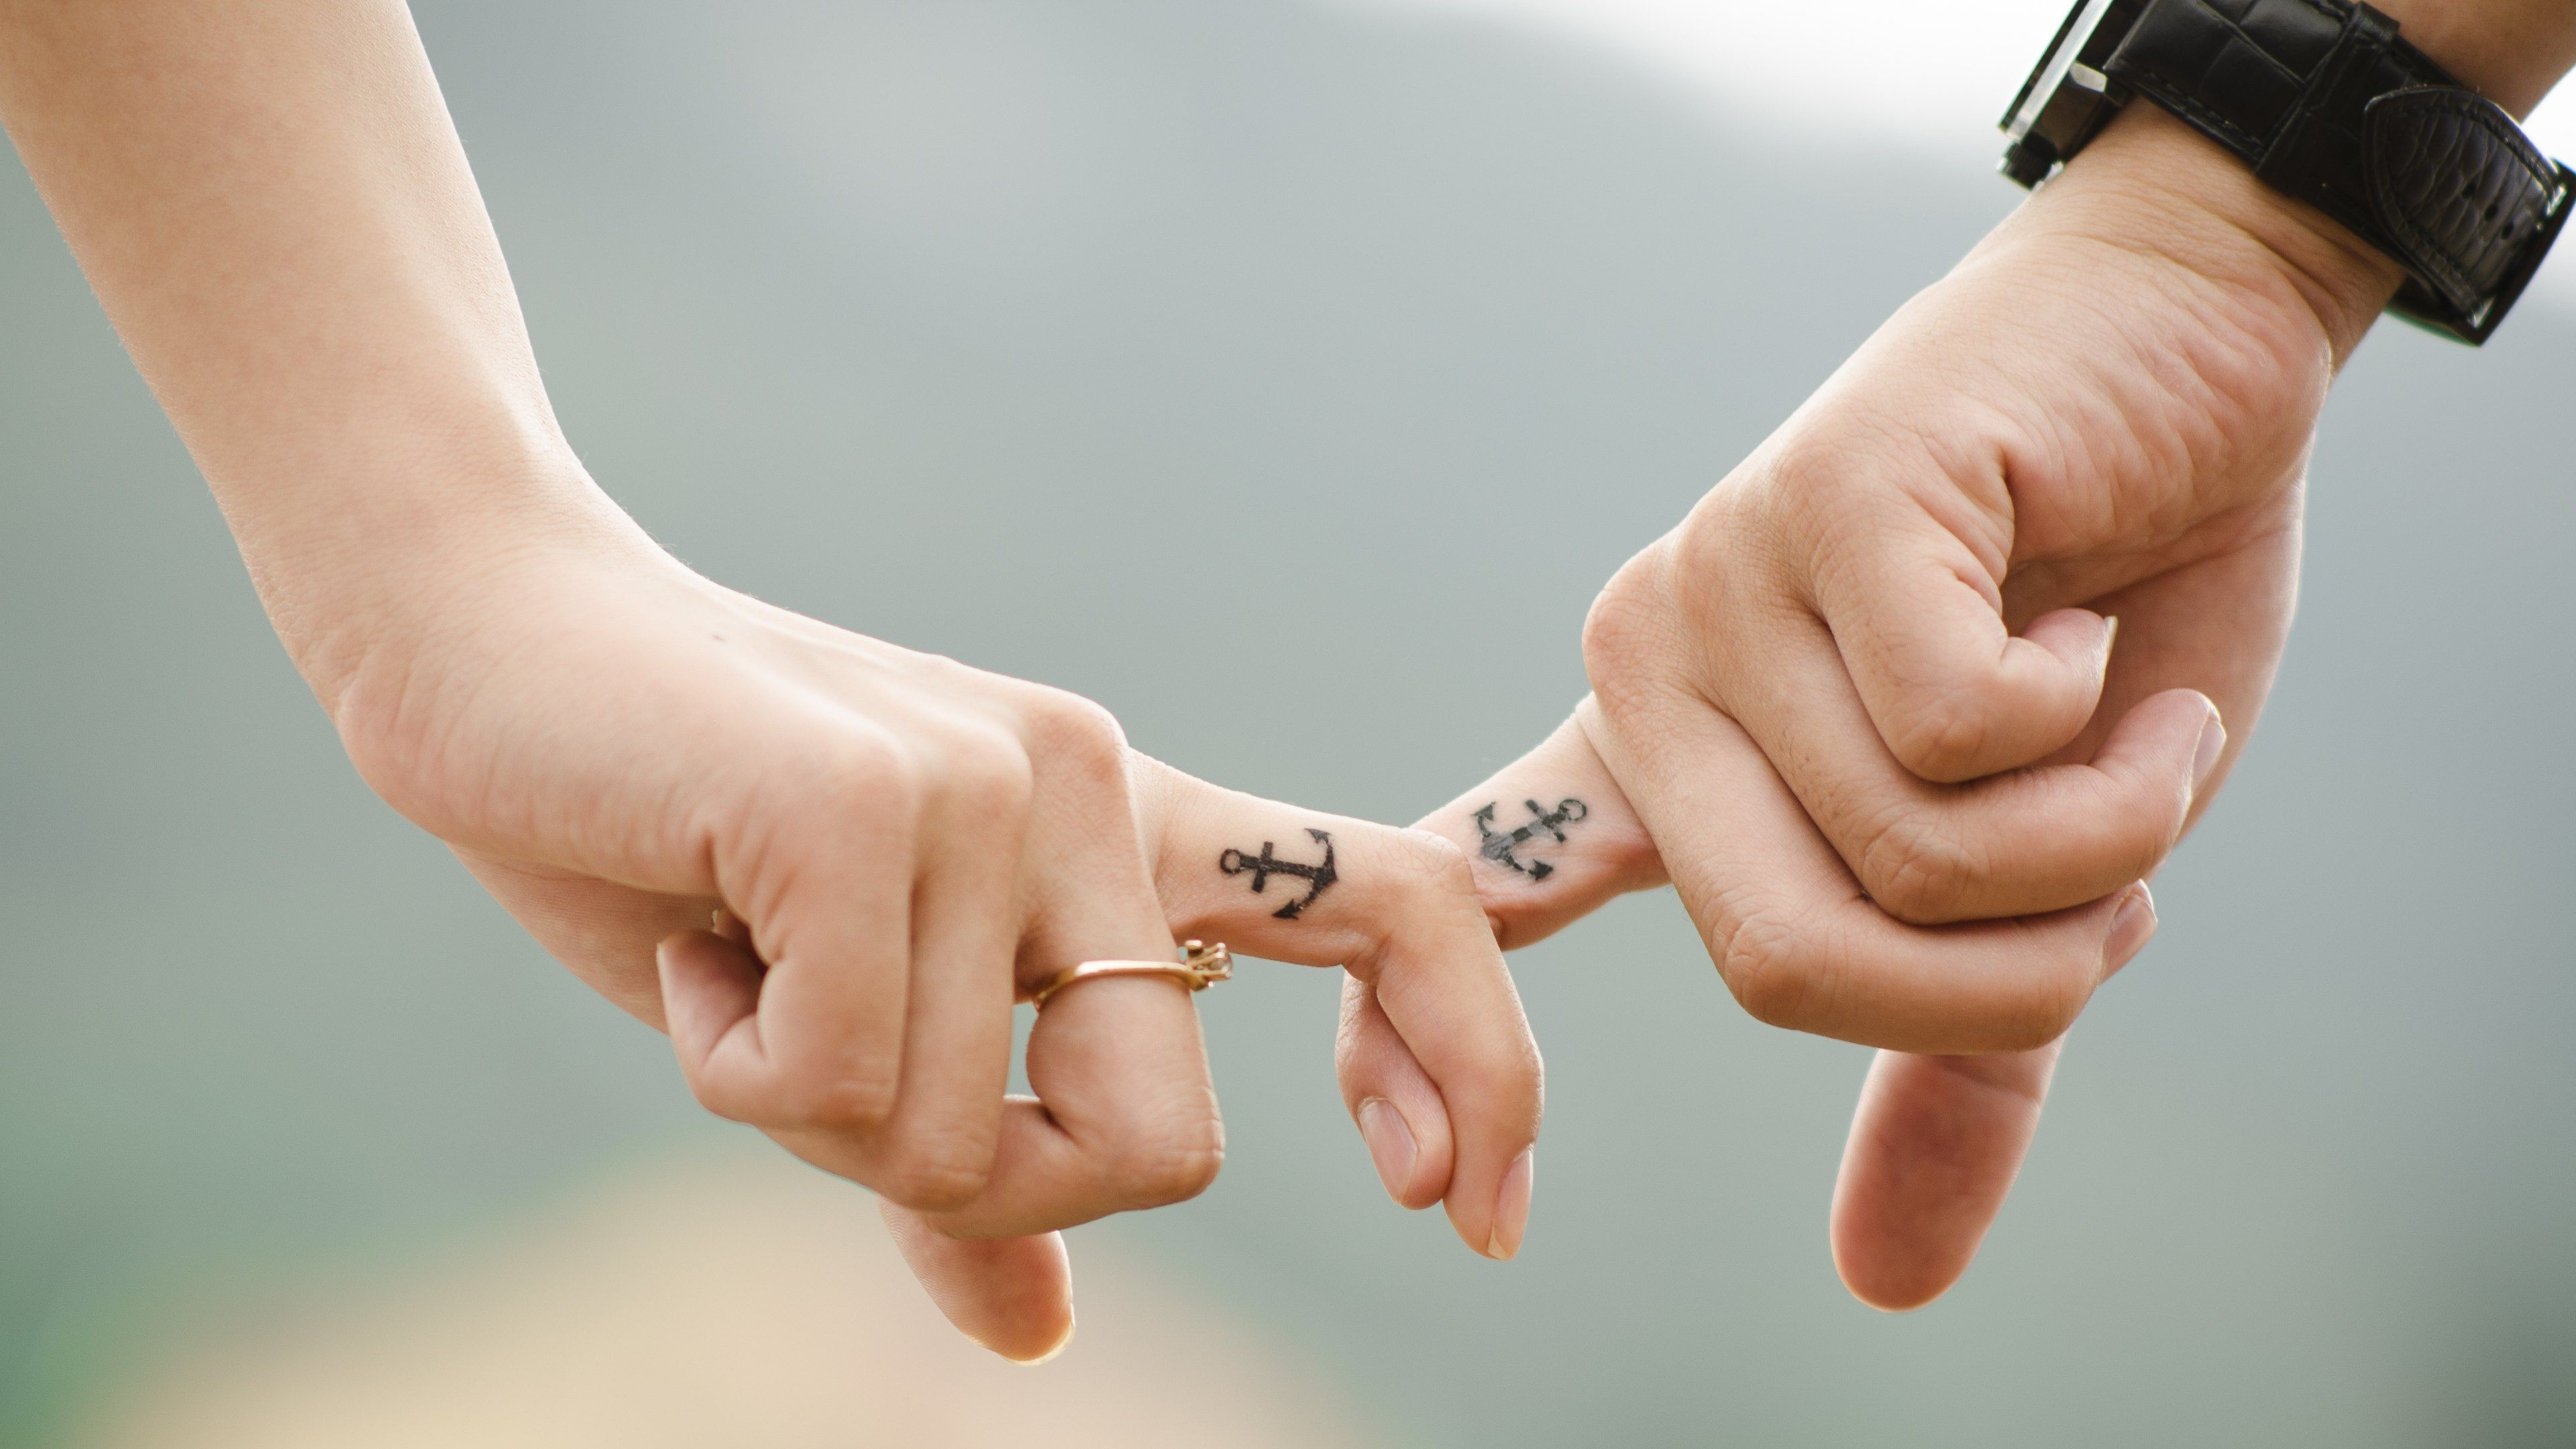 3840x2160 Love Hands Of Romantic Couple Wallpaper